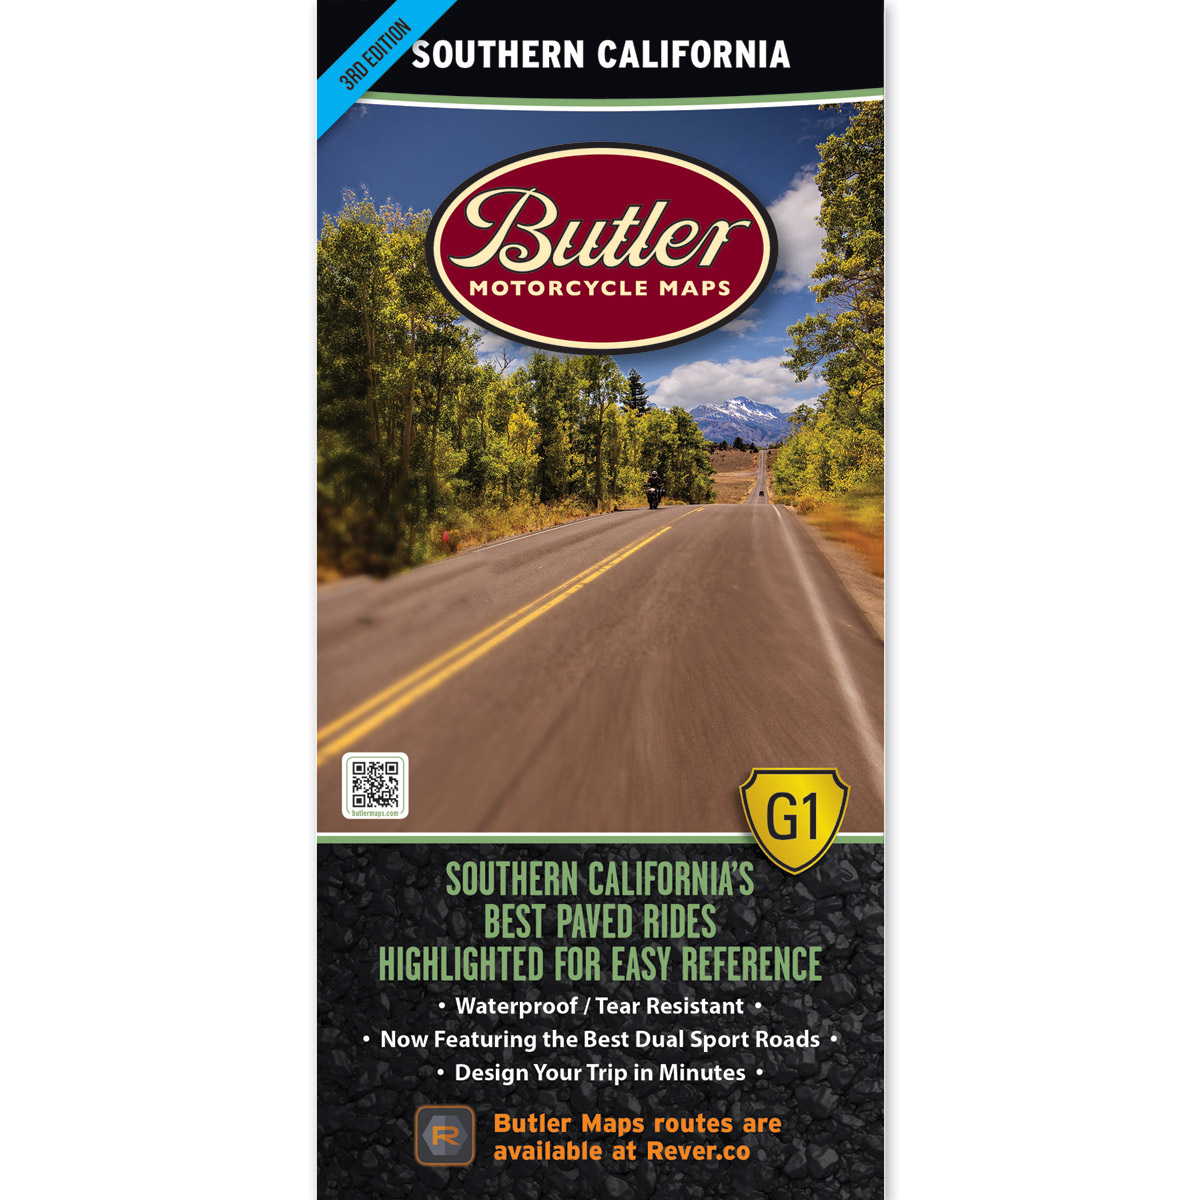 Butler Maps G1 Southern California Motorcycle Map